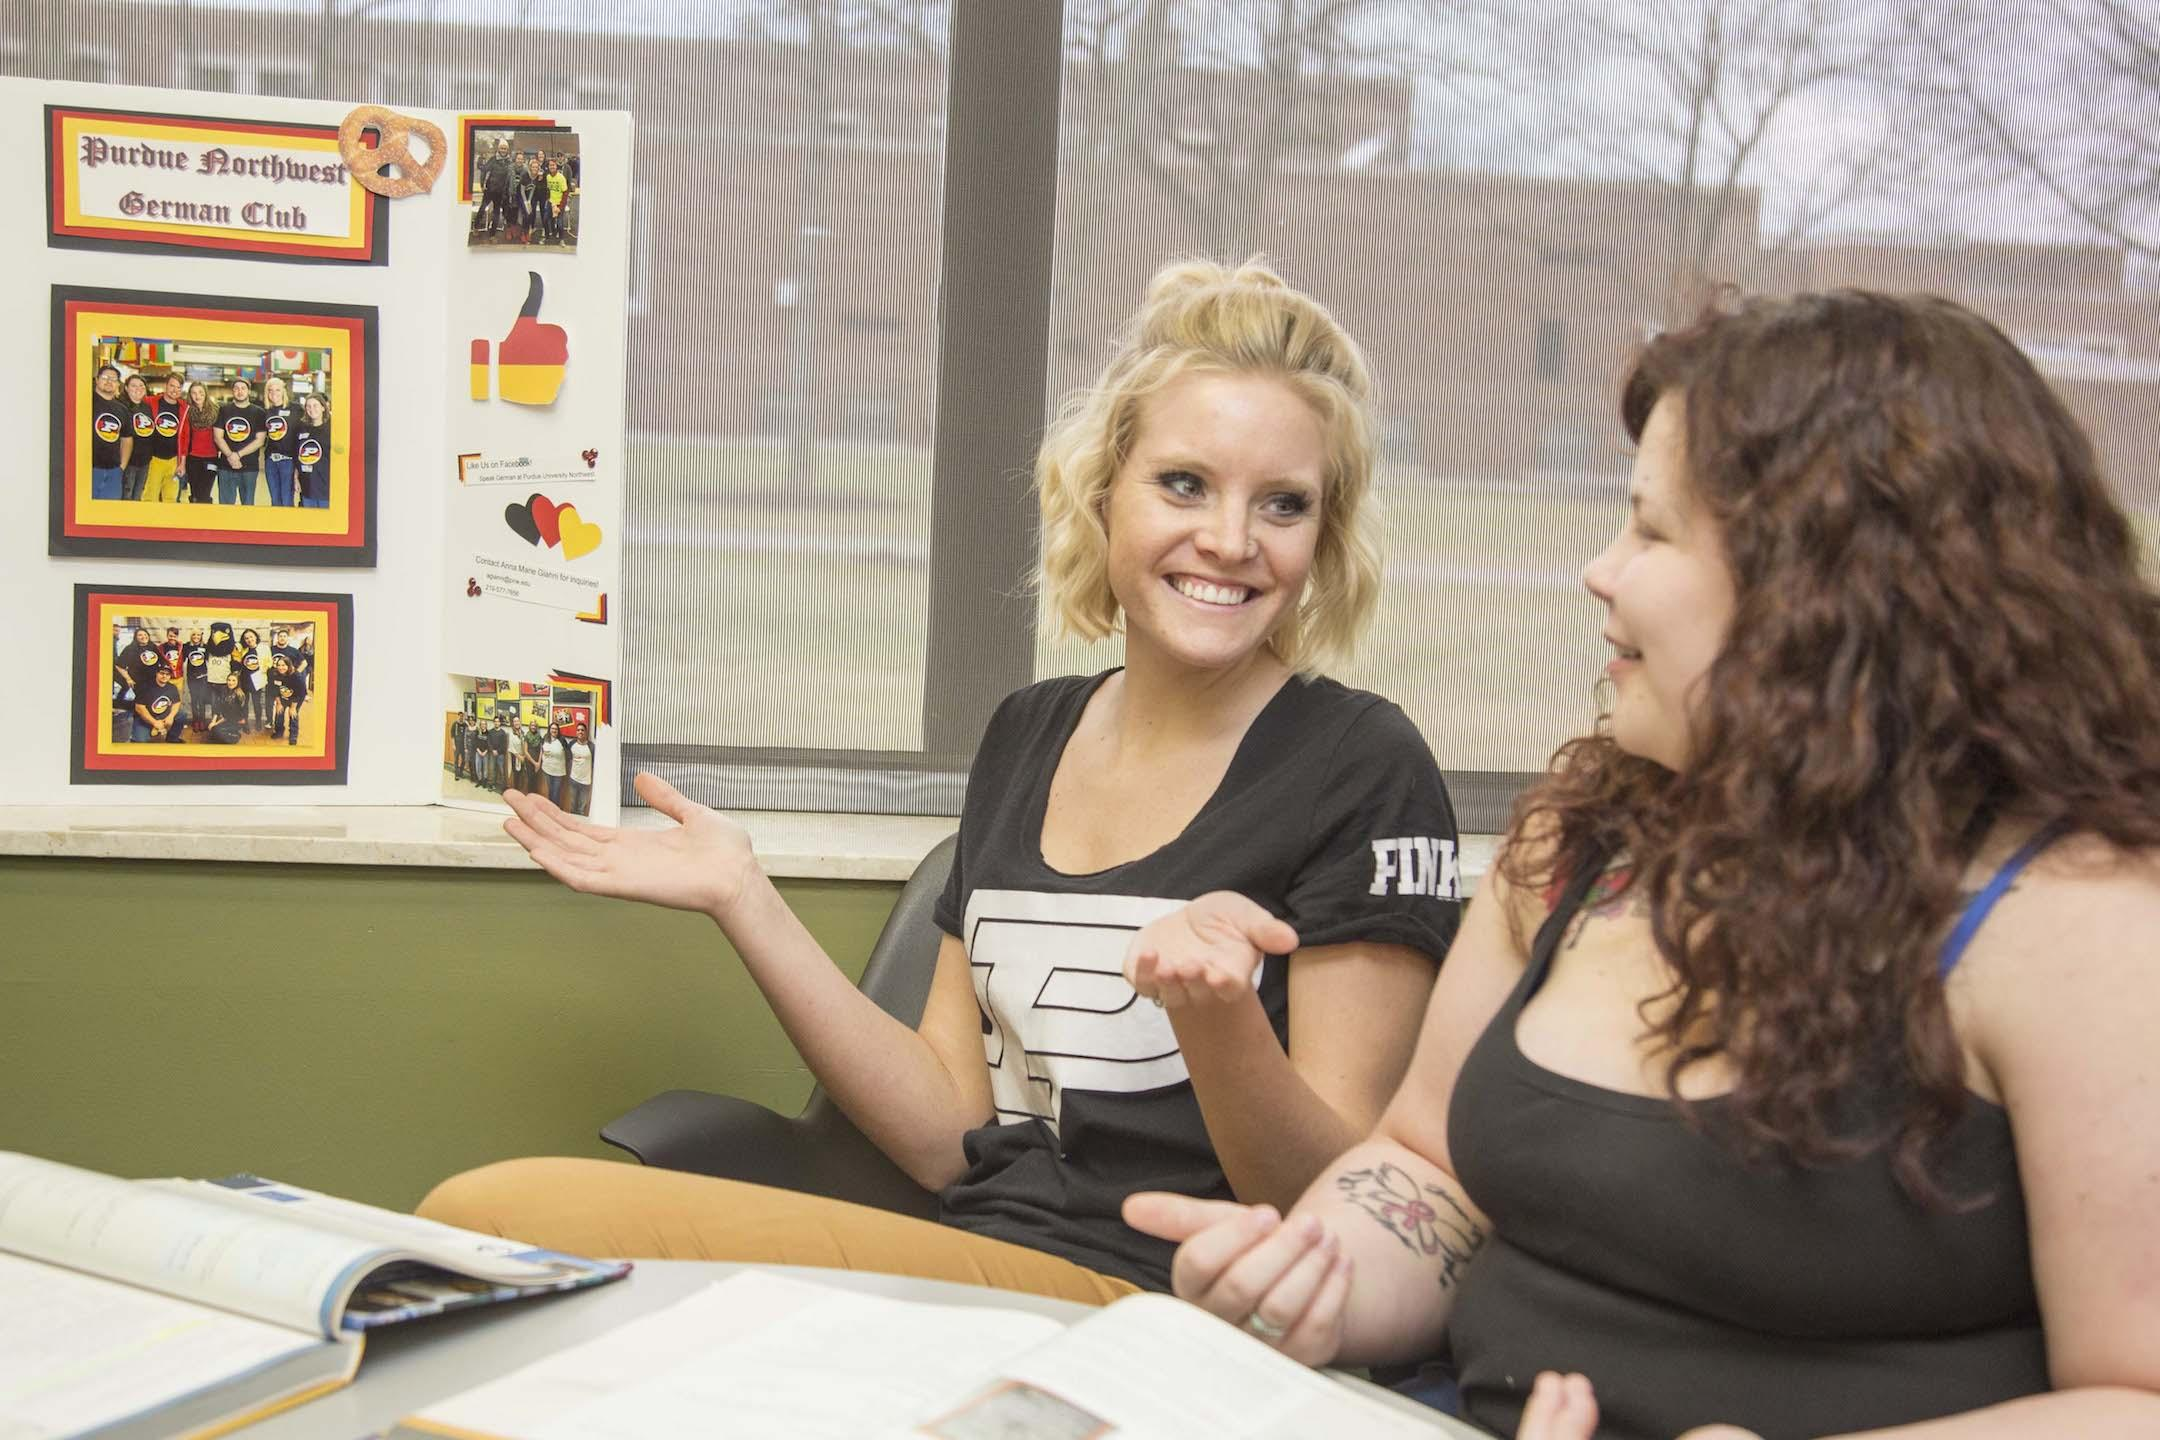 Anna Gianni (left) and Bonnie Hamstra, junior elementary education major (right), talk about German club together.